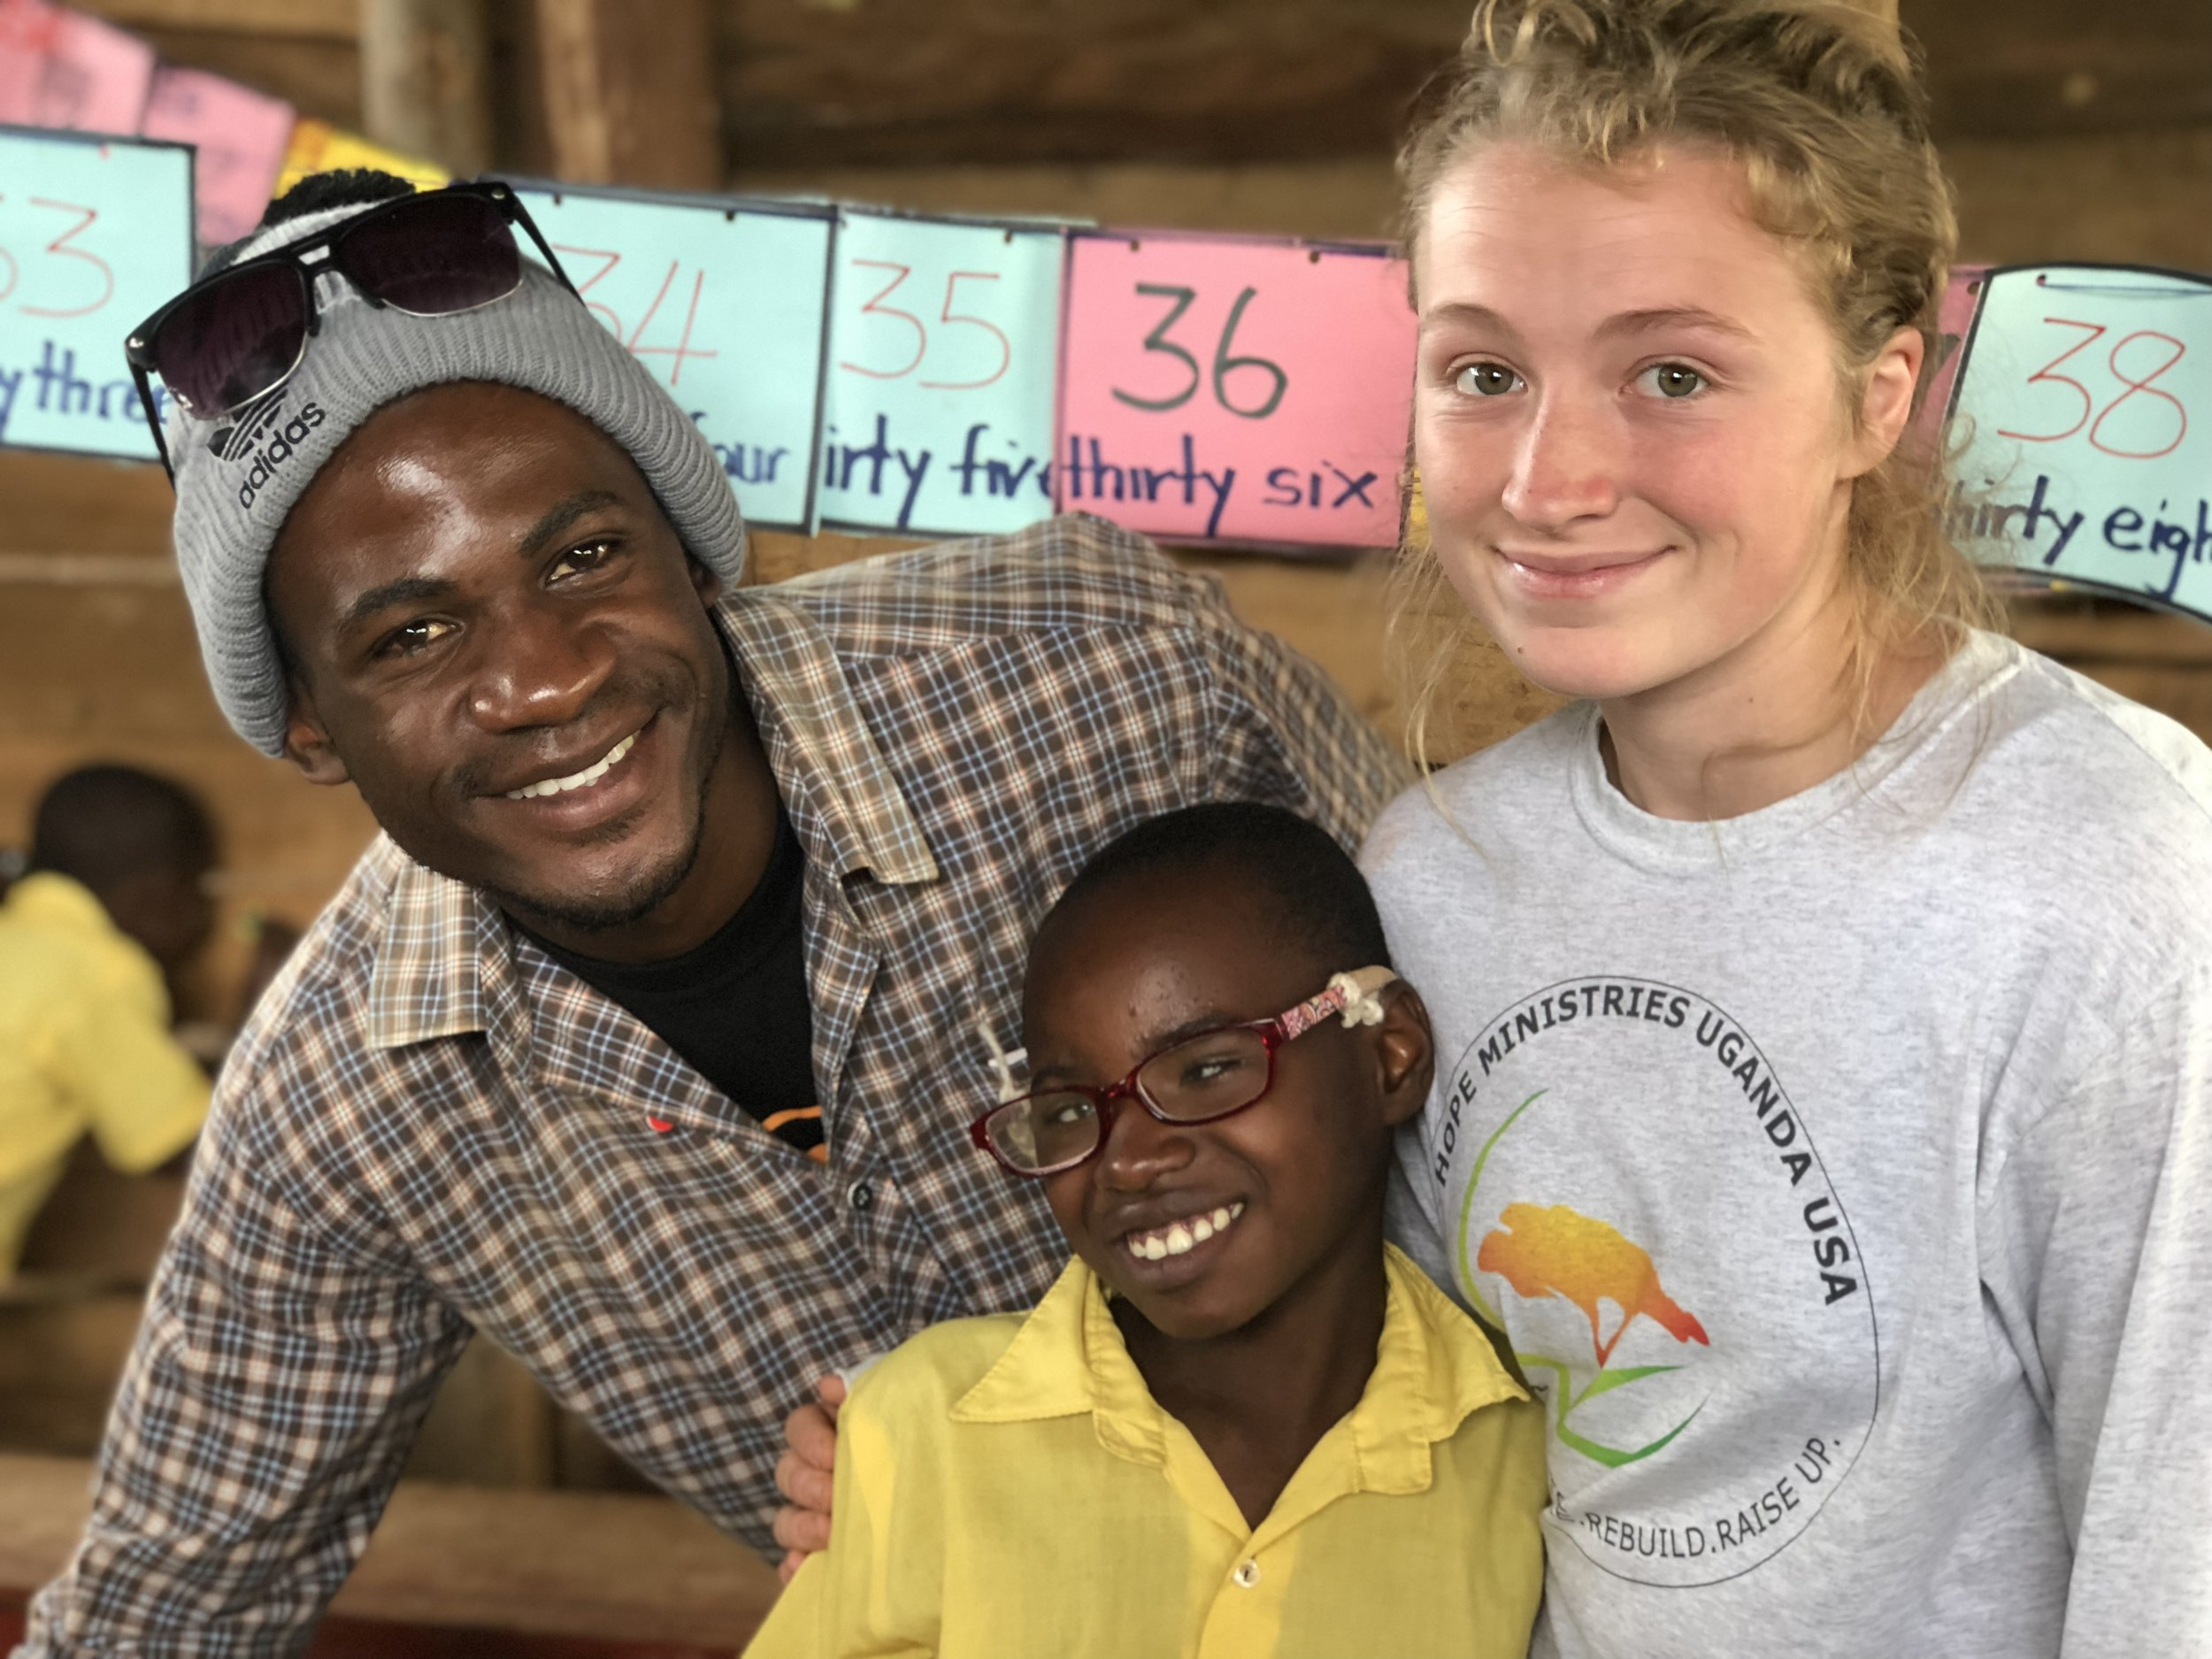 Building relationships with our Seeds of Hope Children impacts them forever!